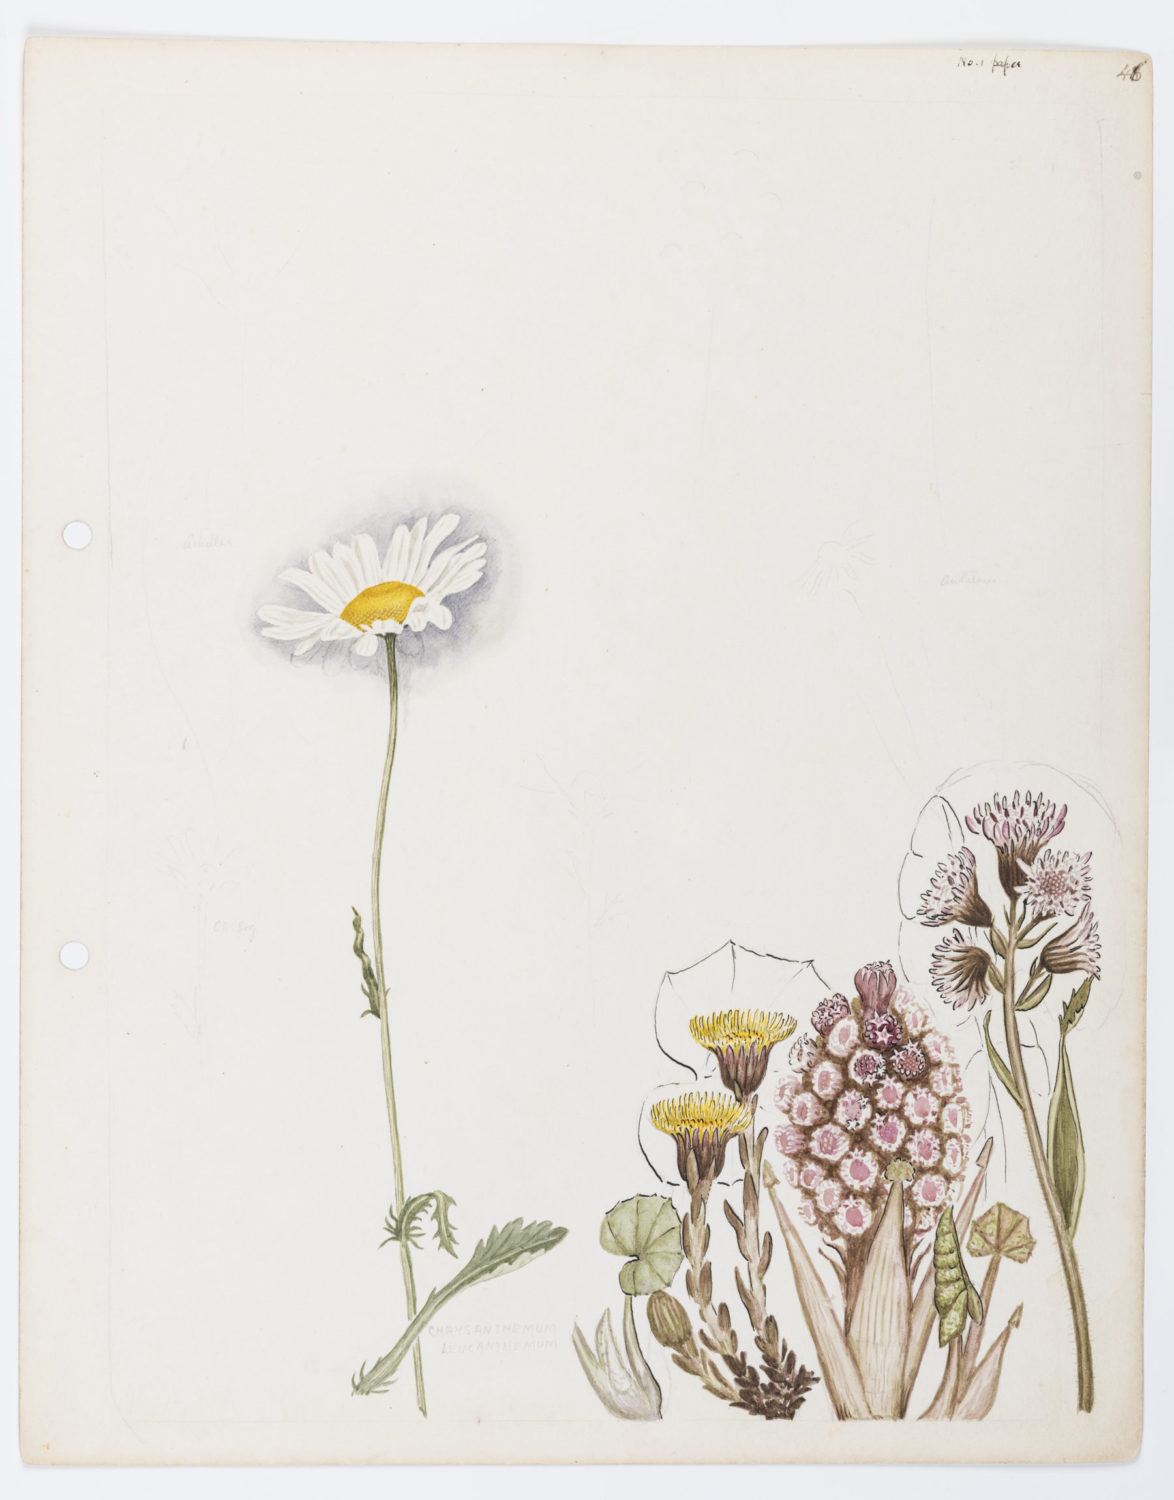 Illustration including ox-eye daisy (Chrysanthemum leucanthemum) by Keble Martin